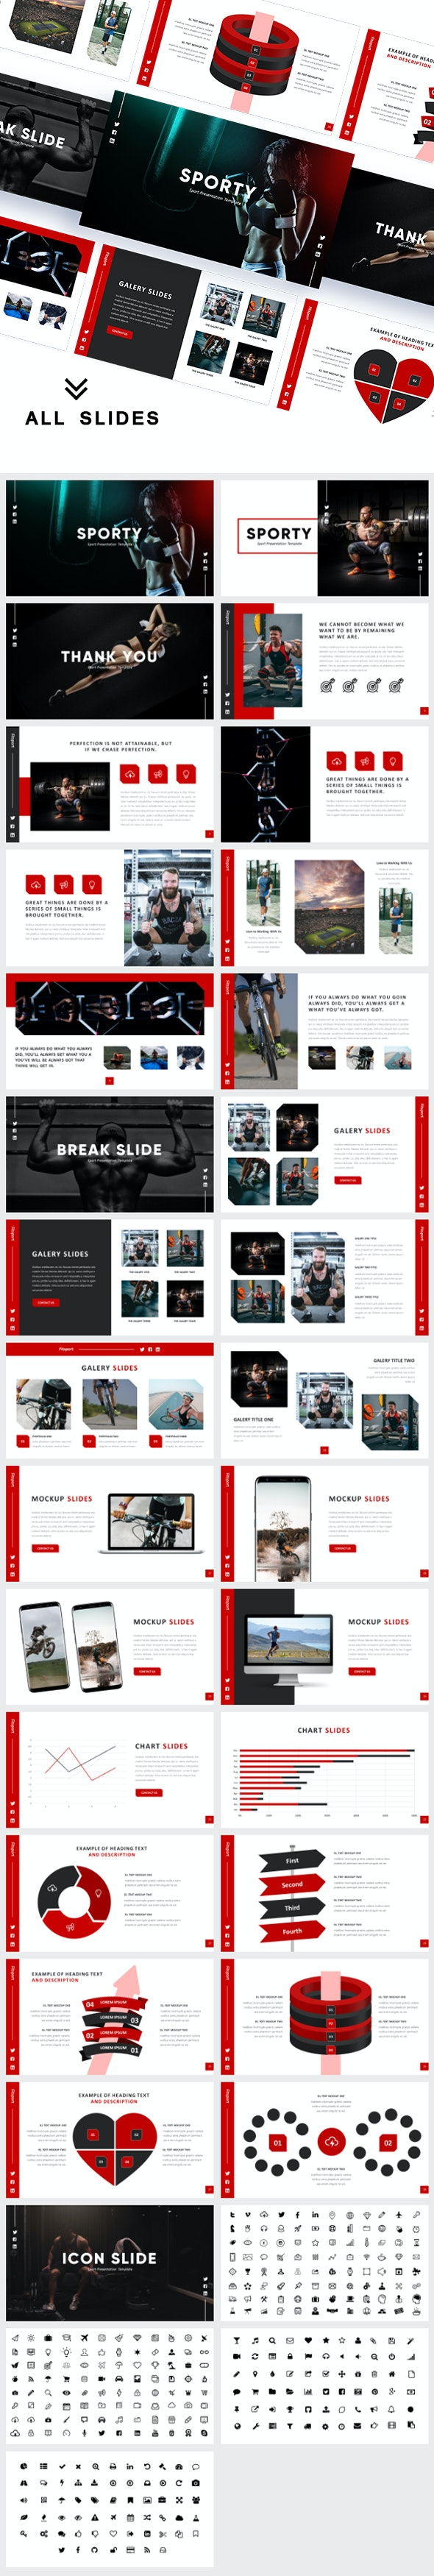 Fitsport - Gym, Fitness & Sports Powerpoint Template - Business PowerPoint Templates